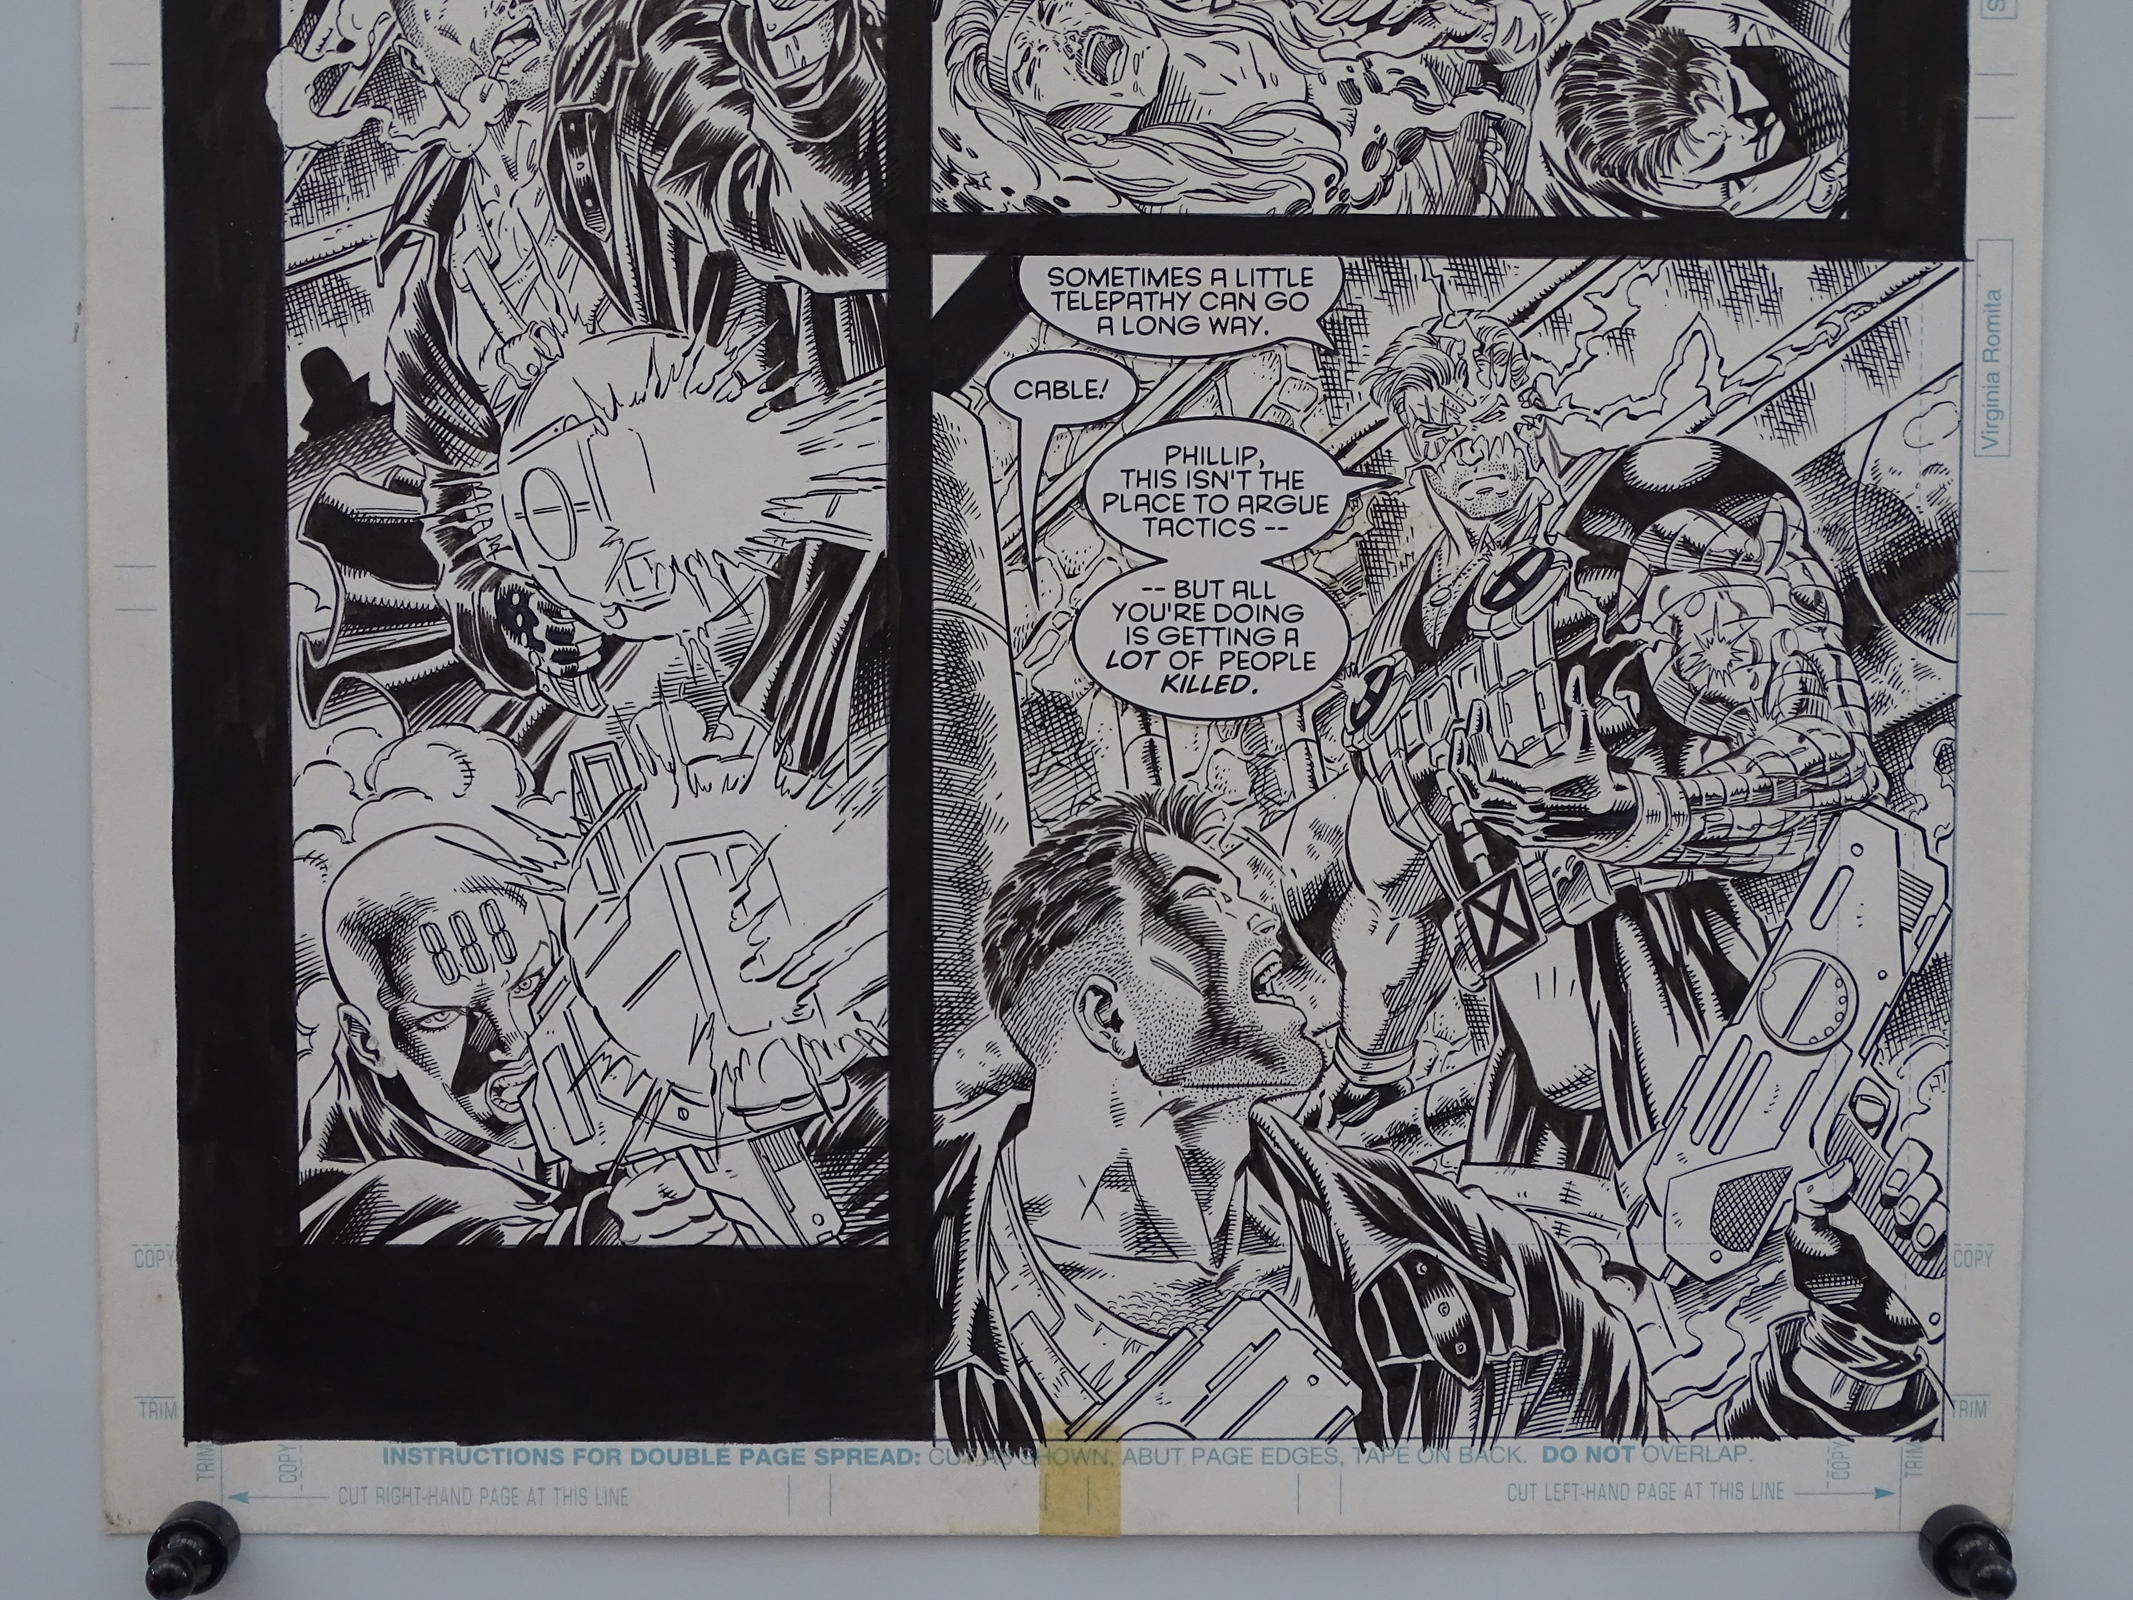 Lot 2307 - CABLE #27 (1993) - ORIGINAL ARTWORK - SIGNED BY IAN CHURCHILL - IAN CHURCHILL (Artist) - Page 4 (